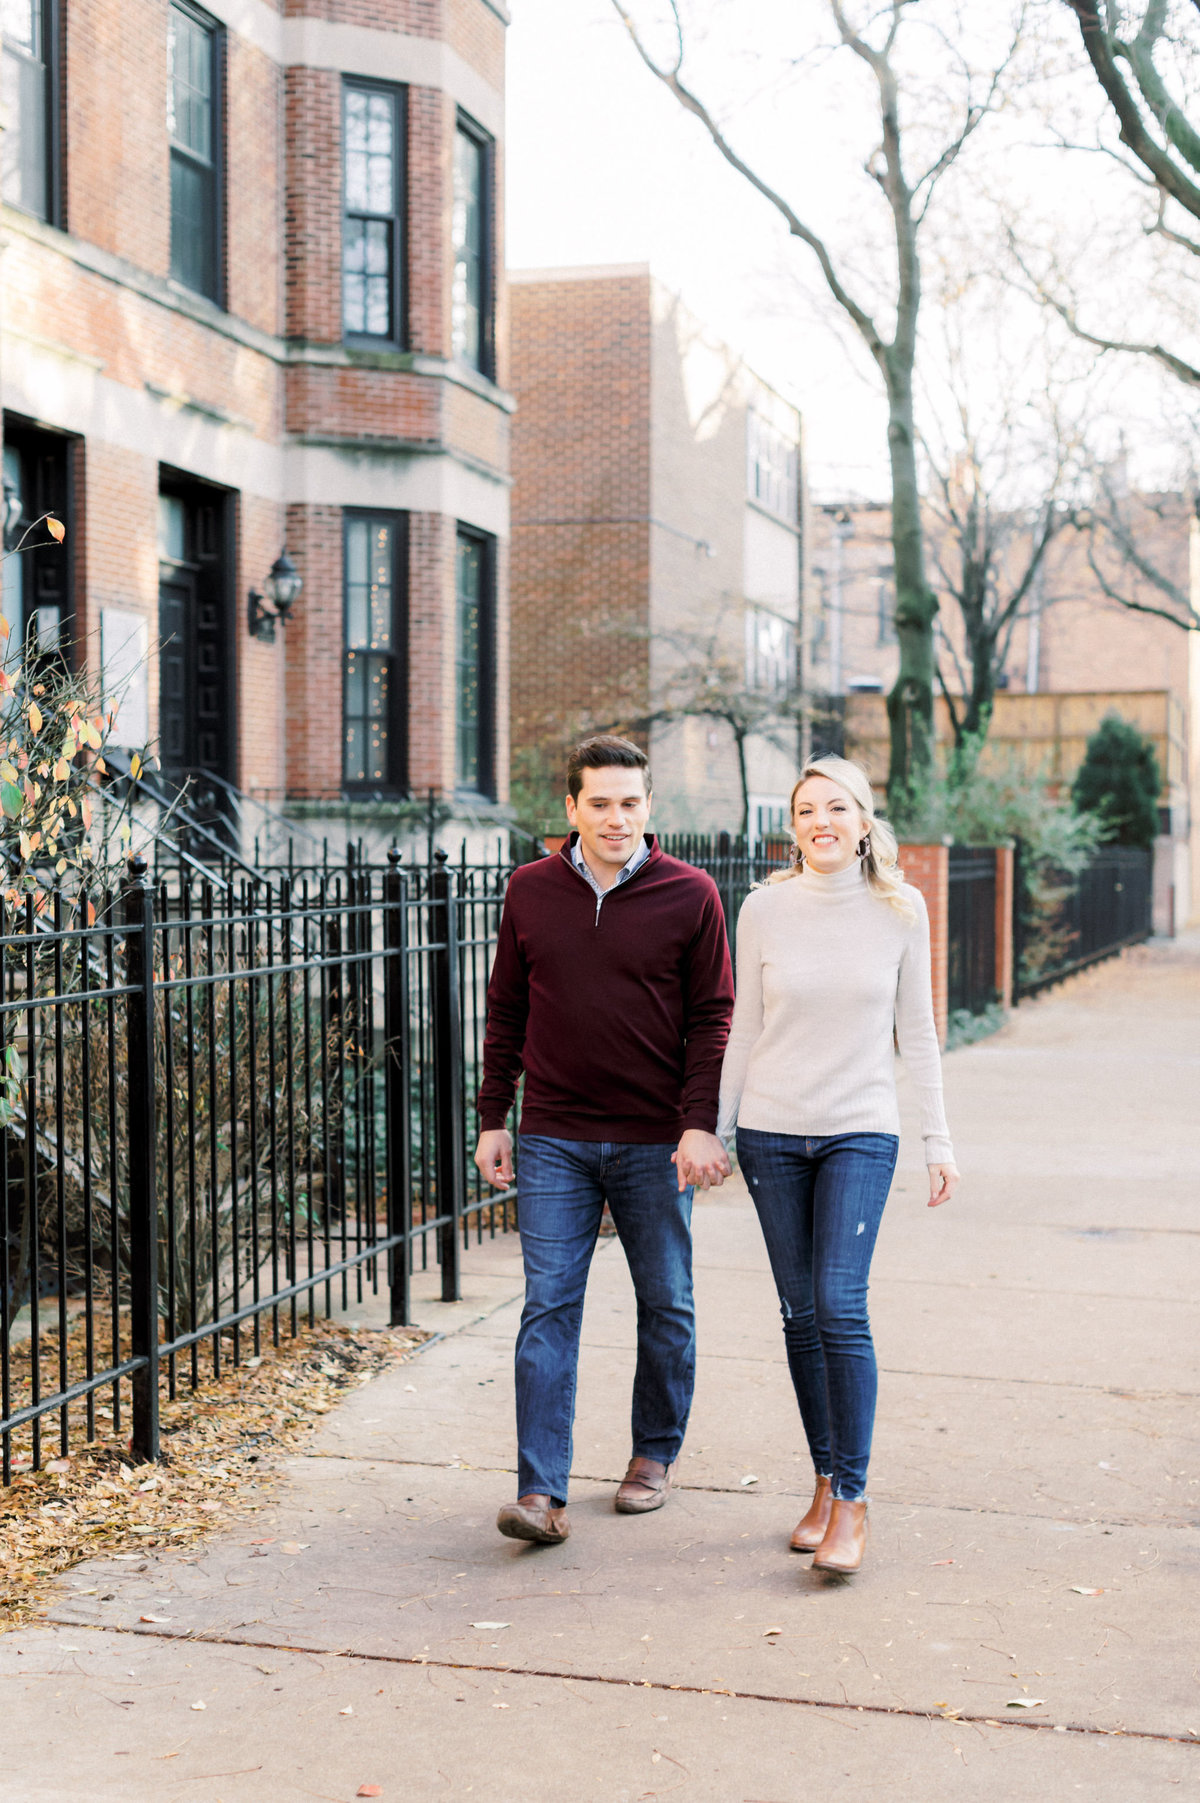 TiffaneyChildsPhotography-ChicagoWeddingPhotographer-AnneMarie+Connor-LincolnParkNatureBoardwalkEngagementSession-1